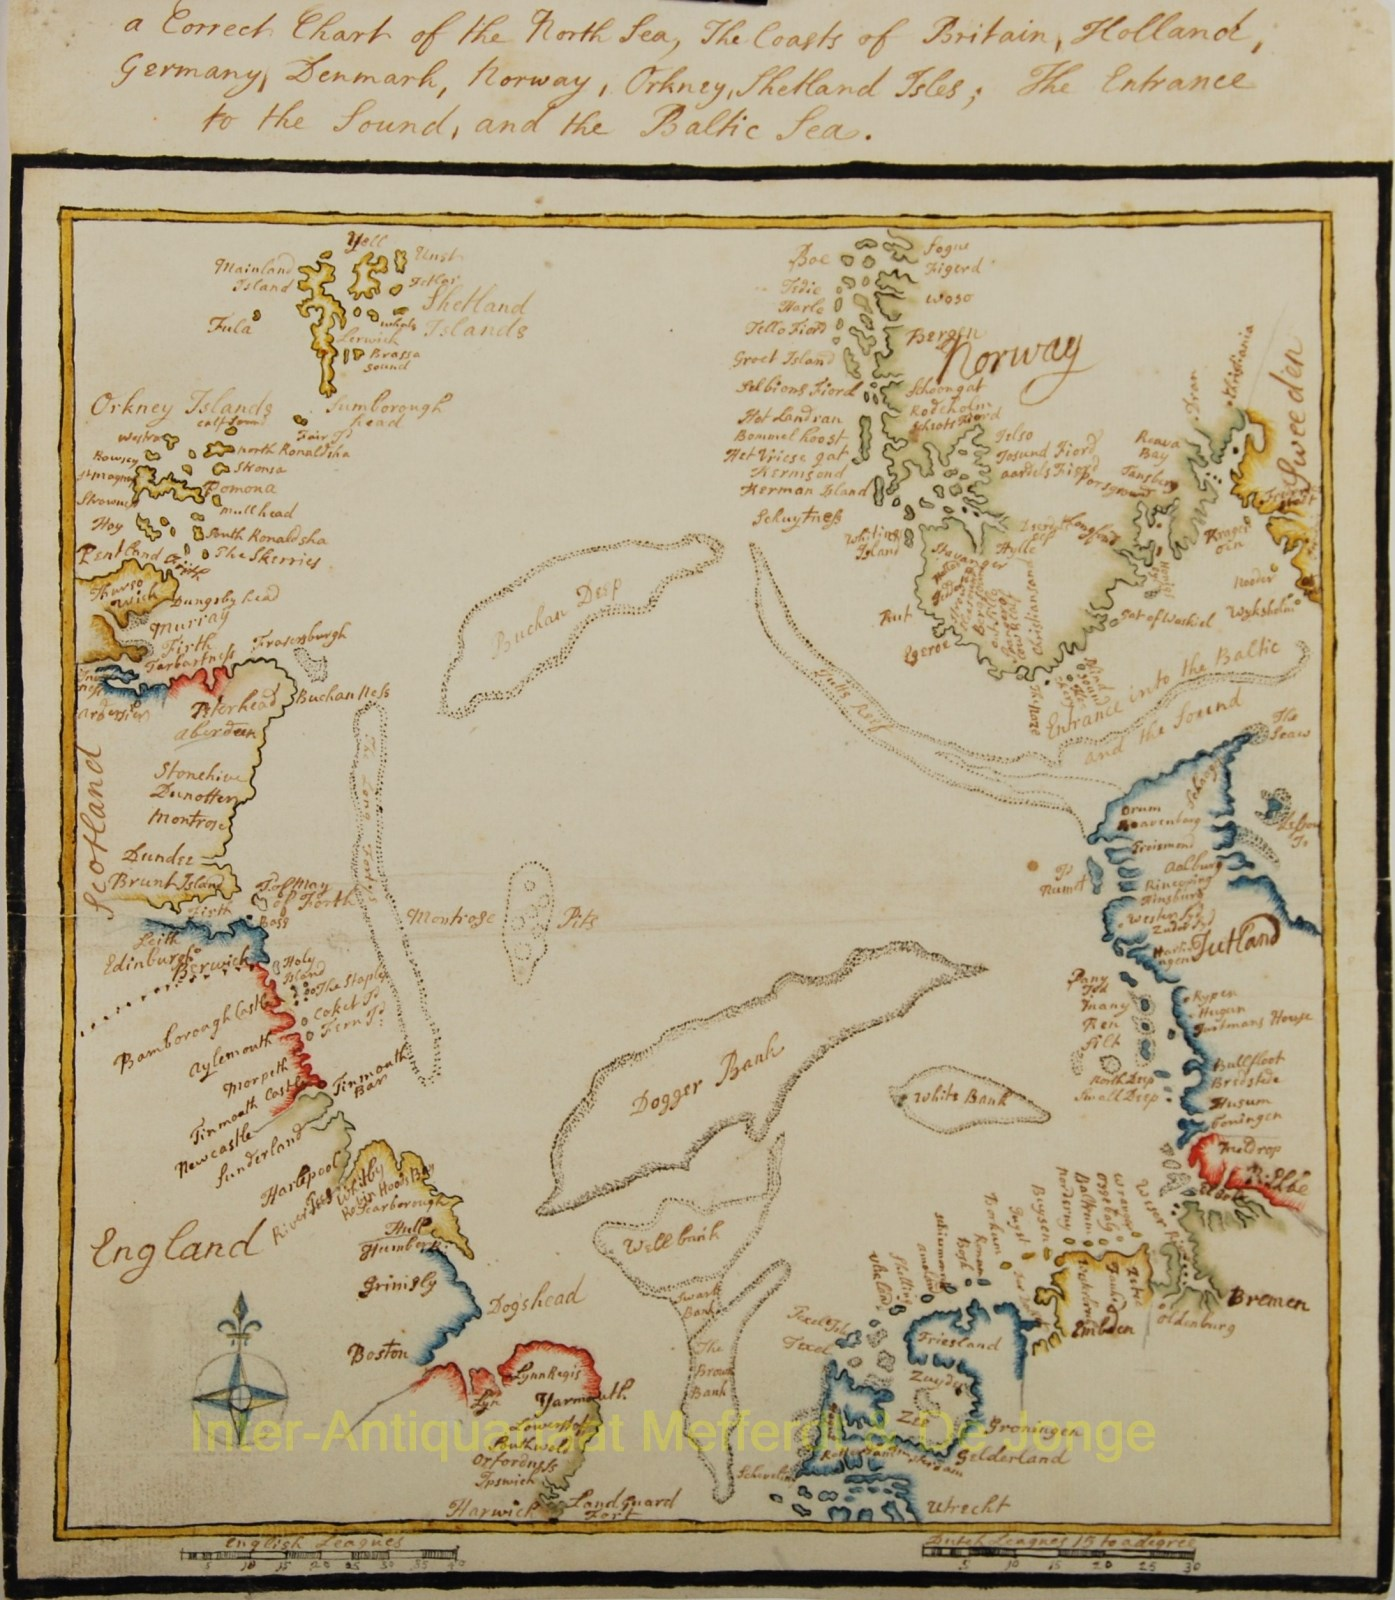 North Sea - manuscript map made in 1782